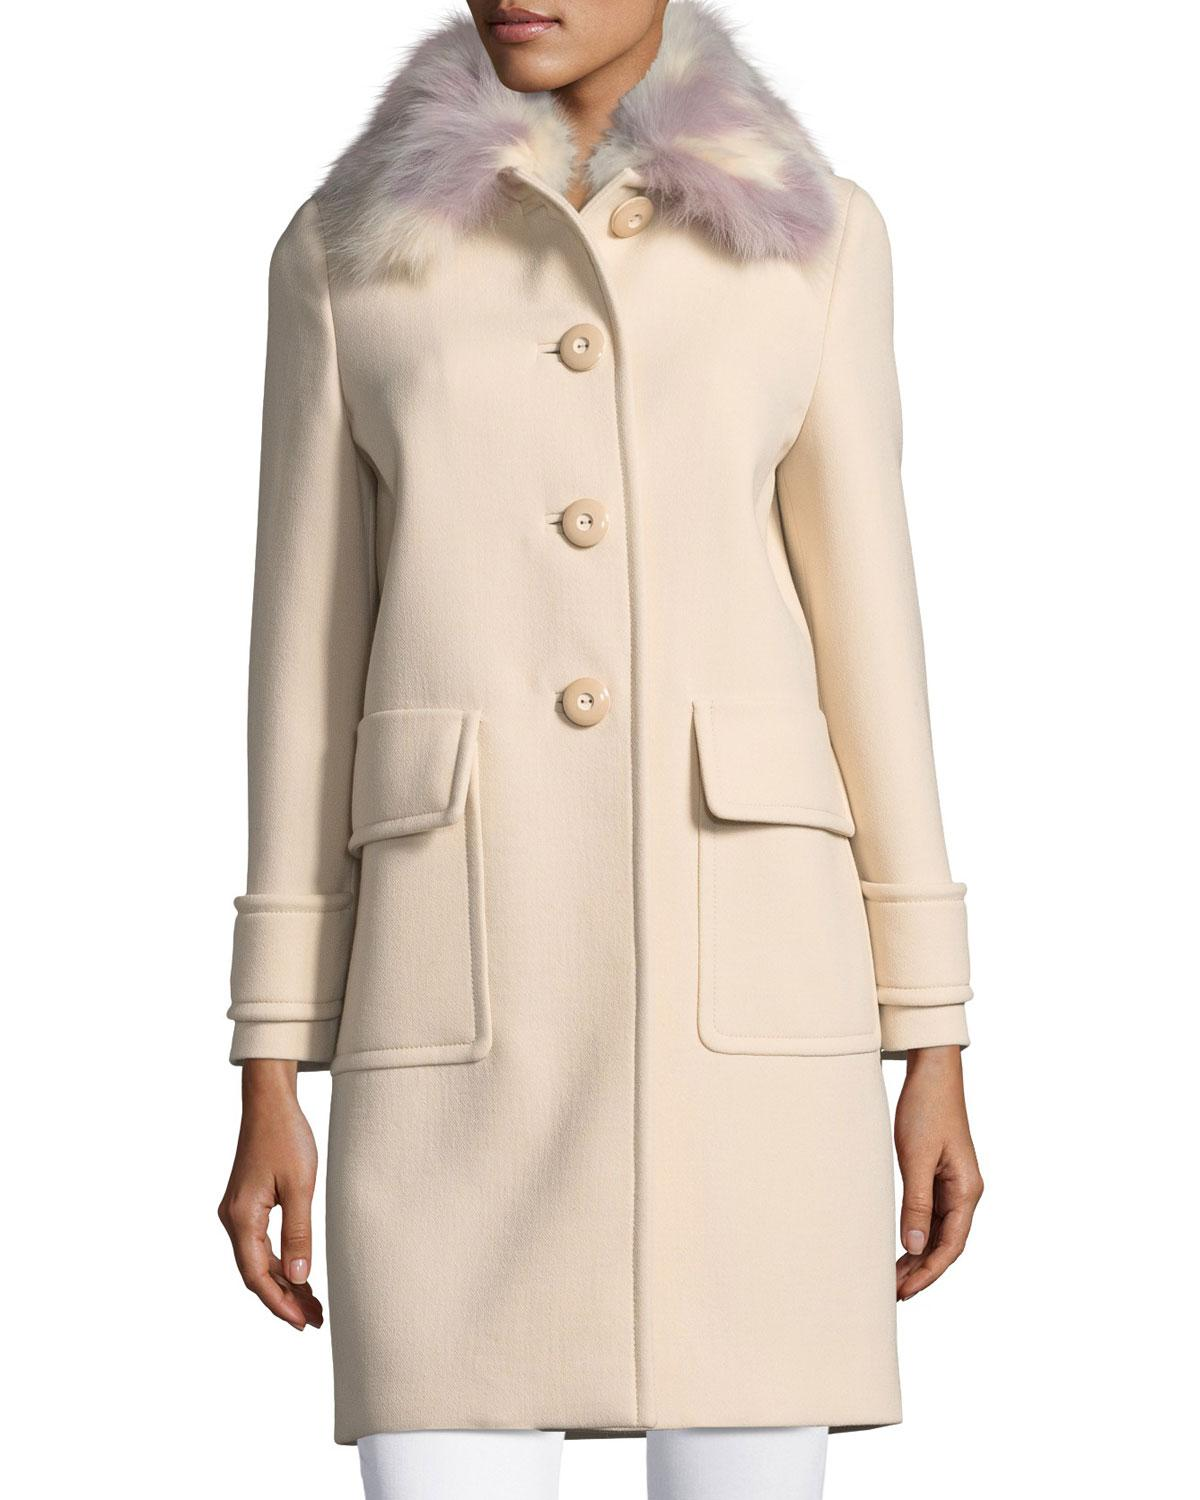 ed4ff0d85a24 Miu Miu Button-front Cashmere Coat With Fur Collar in Pink - Lyst